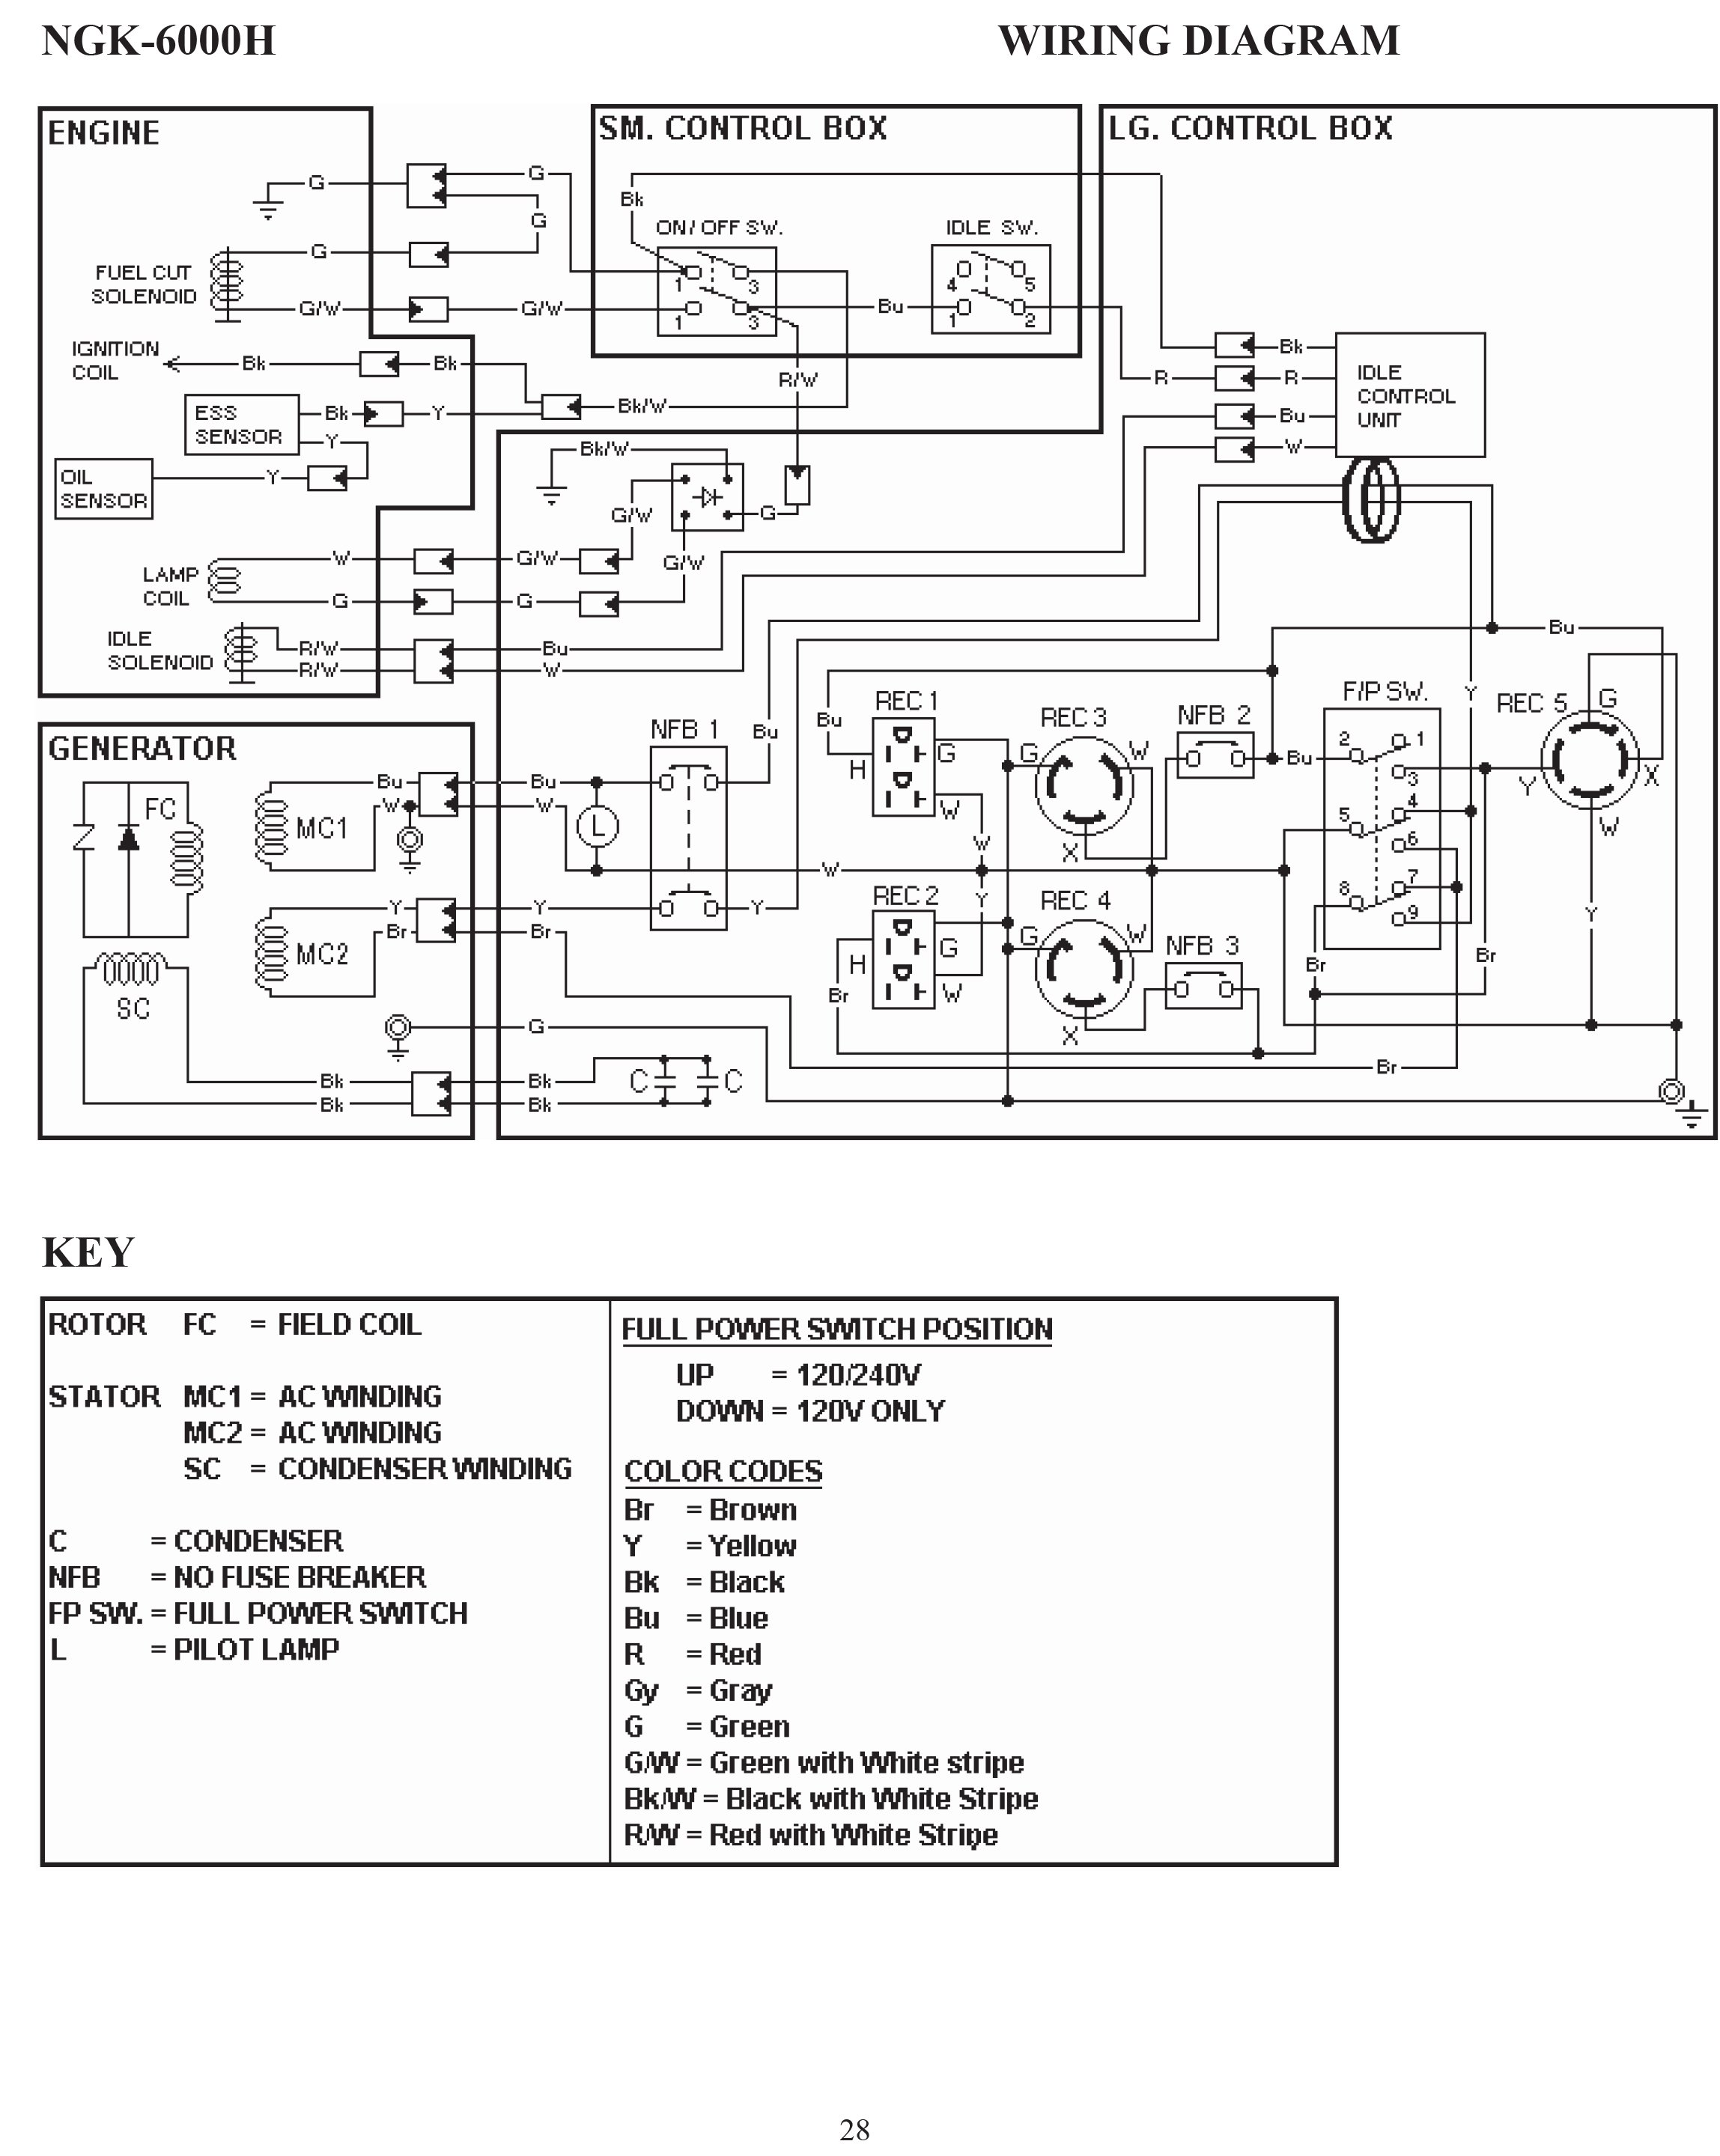 Sawzall Wiring Diagram And Ebooks Electrical Symbols House Diagrams View Dewalt Todays Rh 4 3 10 1813weddingbarn Com Simple Residential